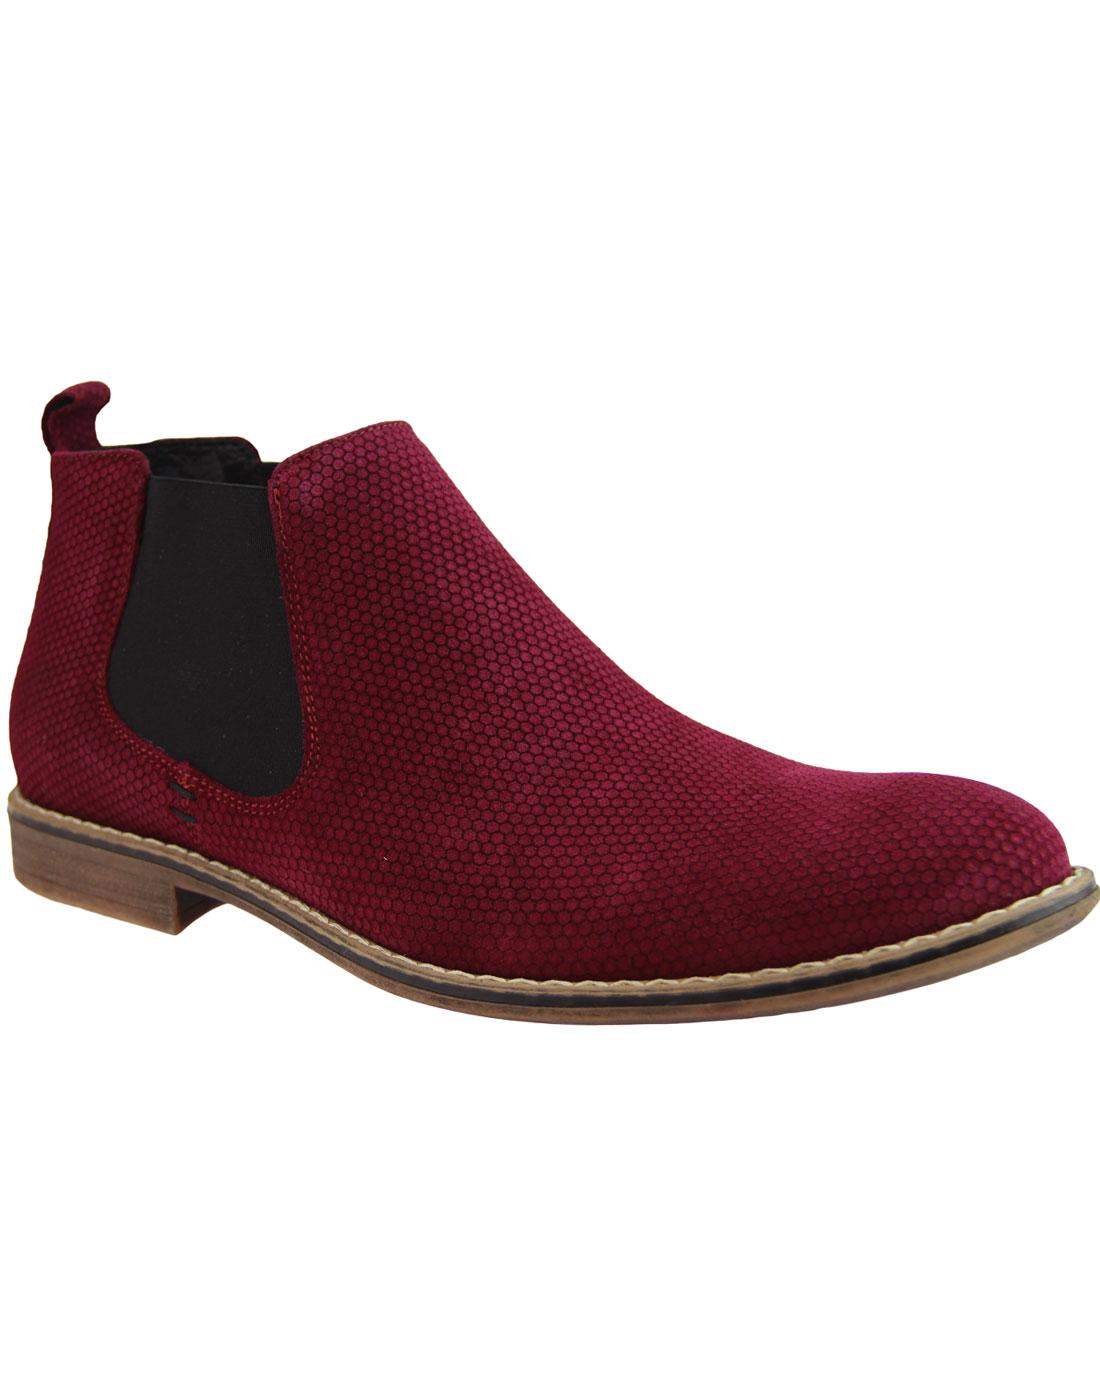 LACUZZO Mod Atom Embossed Suede Chelsea Boots (C)